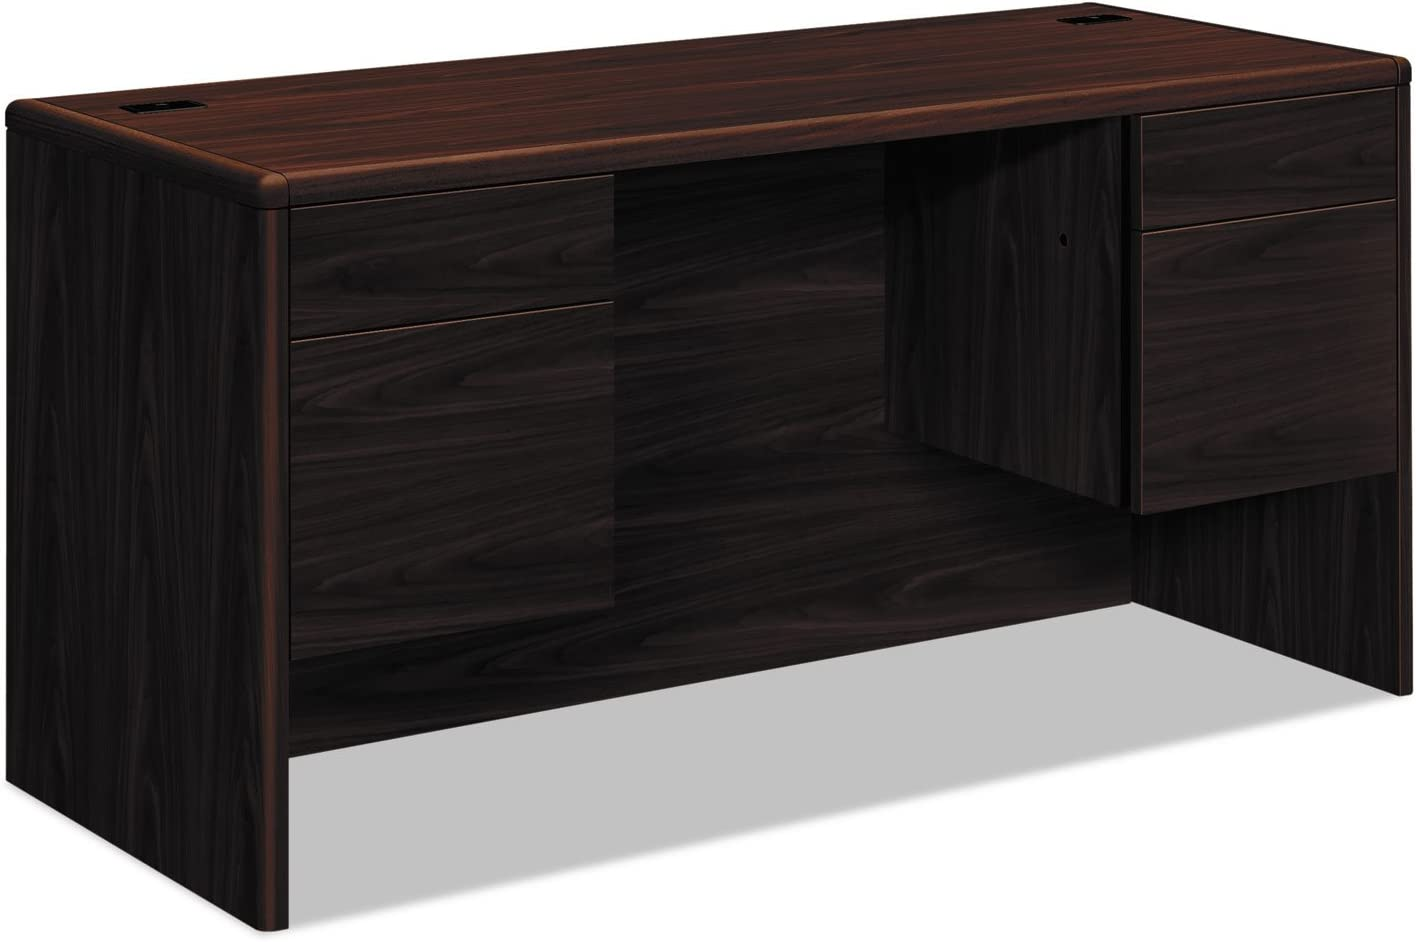 HON Selling and selling 10765NN 10700 Kneespace Bargain Credenza Height Pedestals 4 60w 3